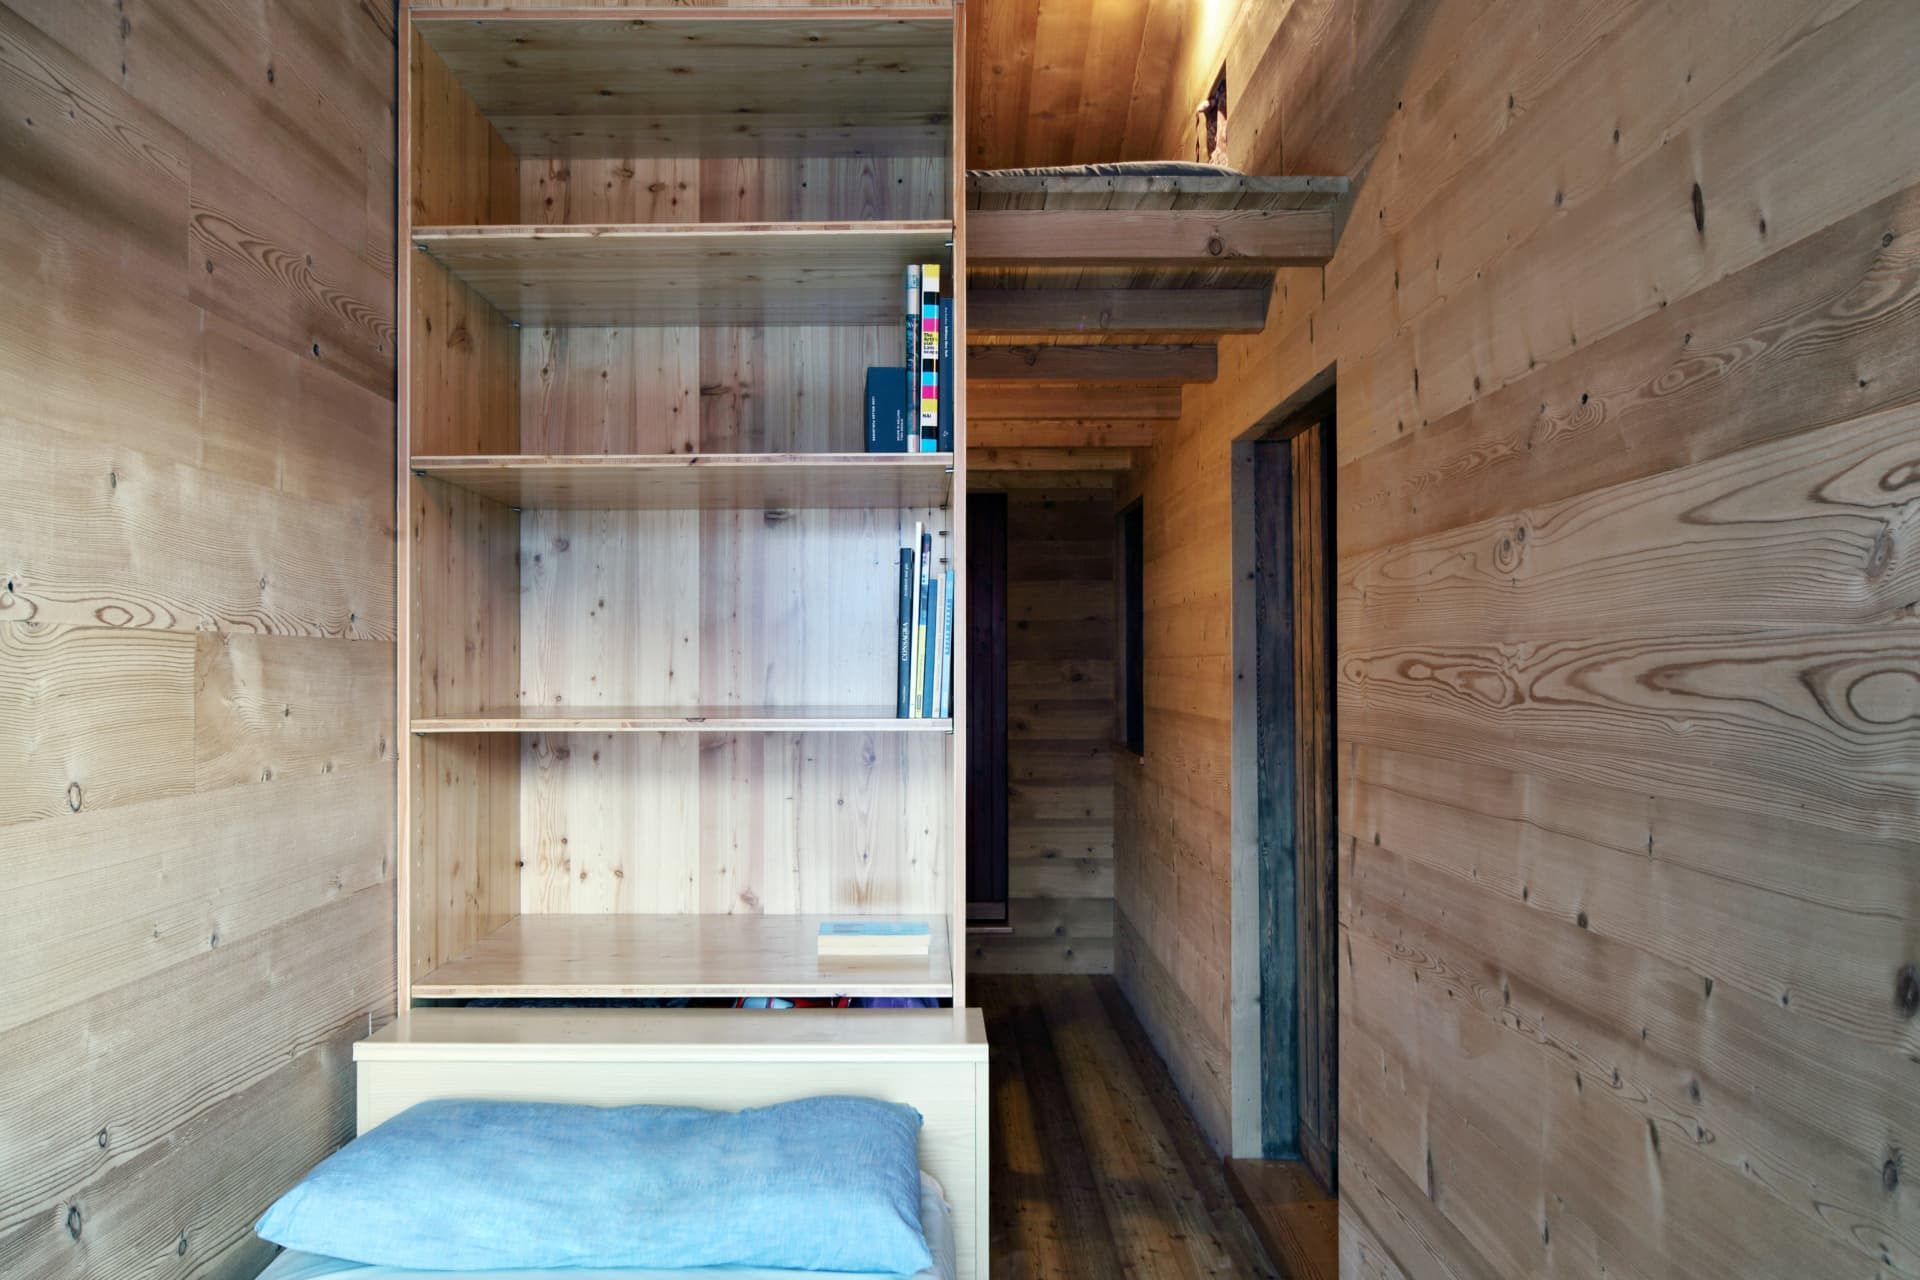 The single bedroom: intimate and wooden-scented.